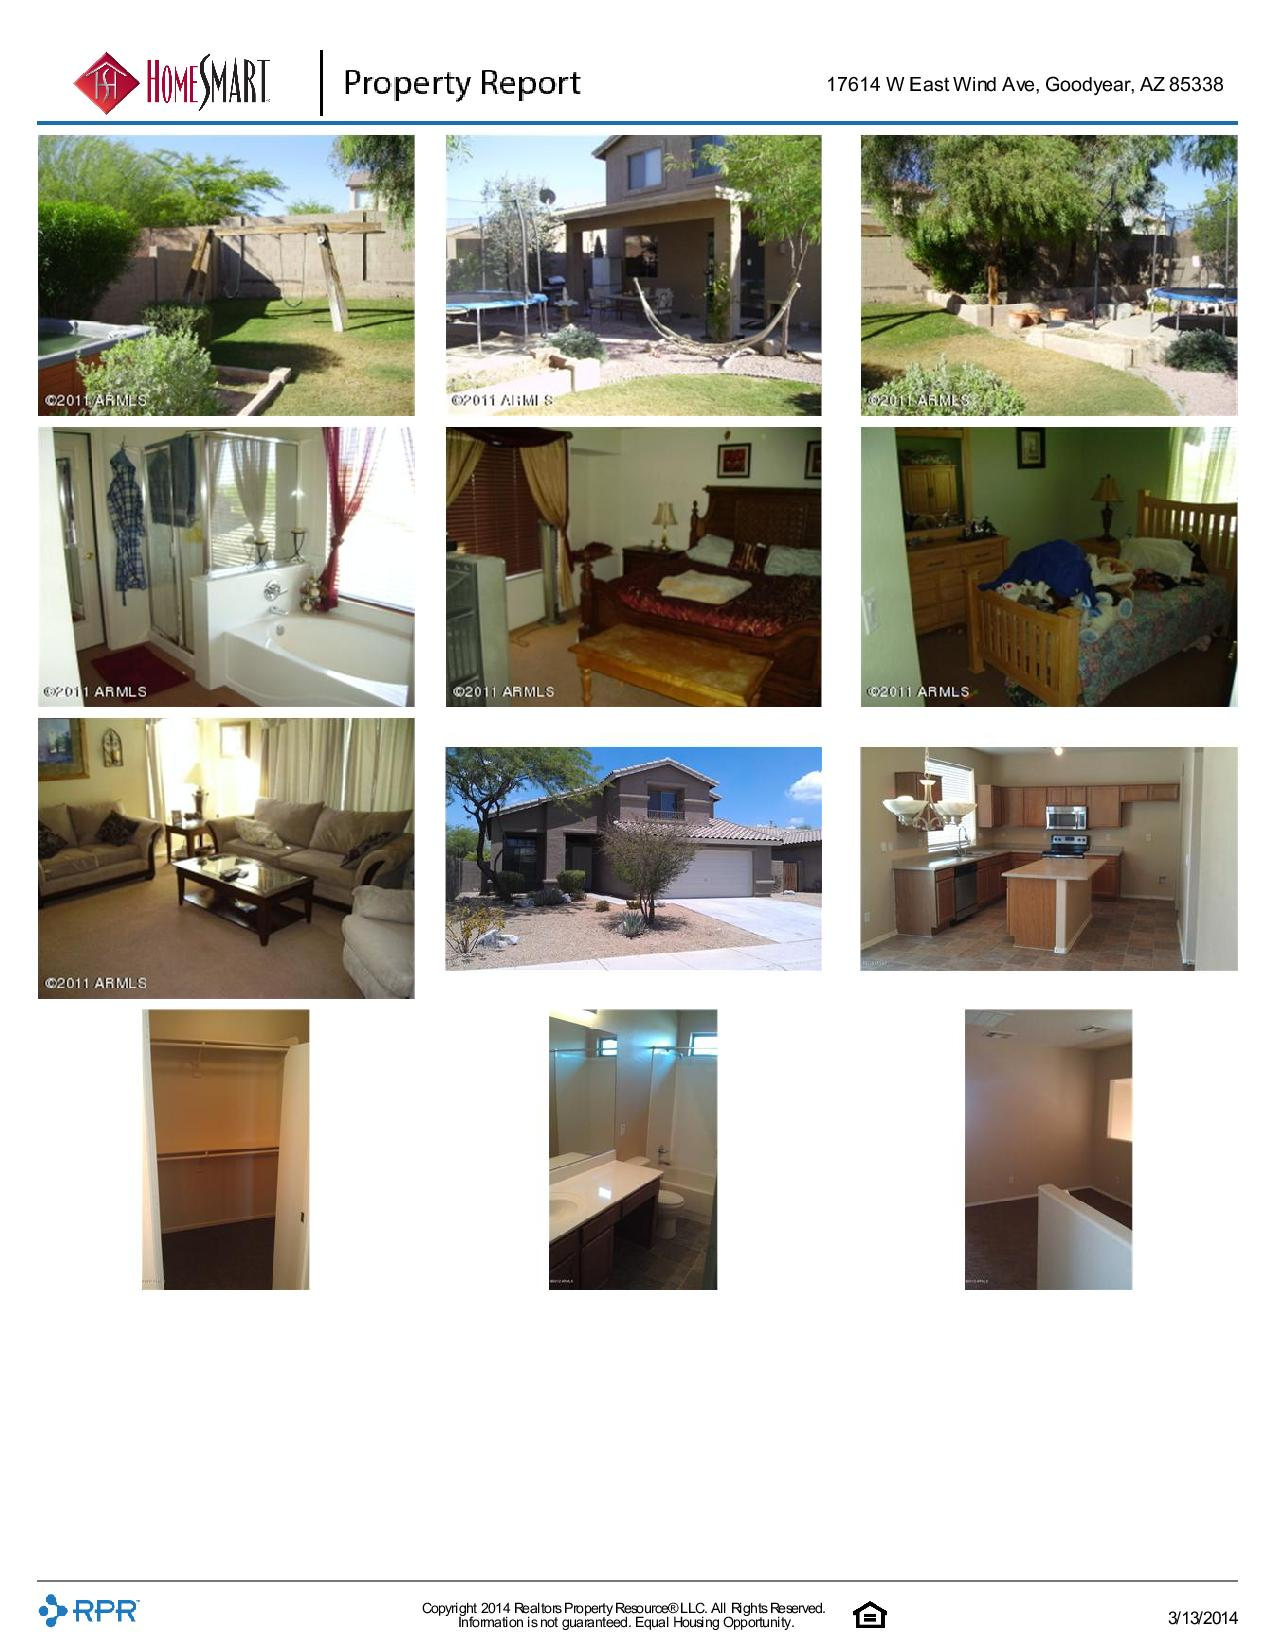 17614-W-East-Wind-Ave-Goodyear-AZ-85338-page-008